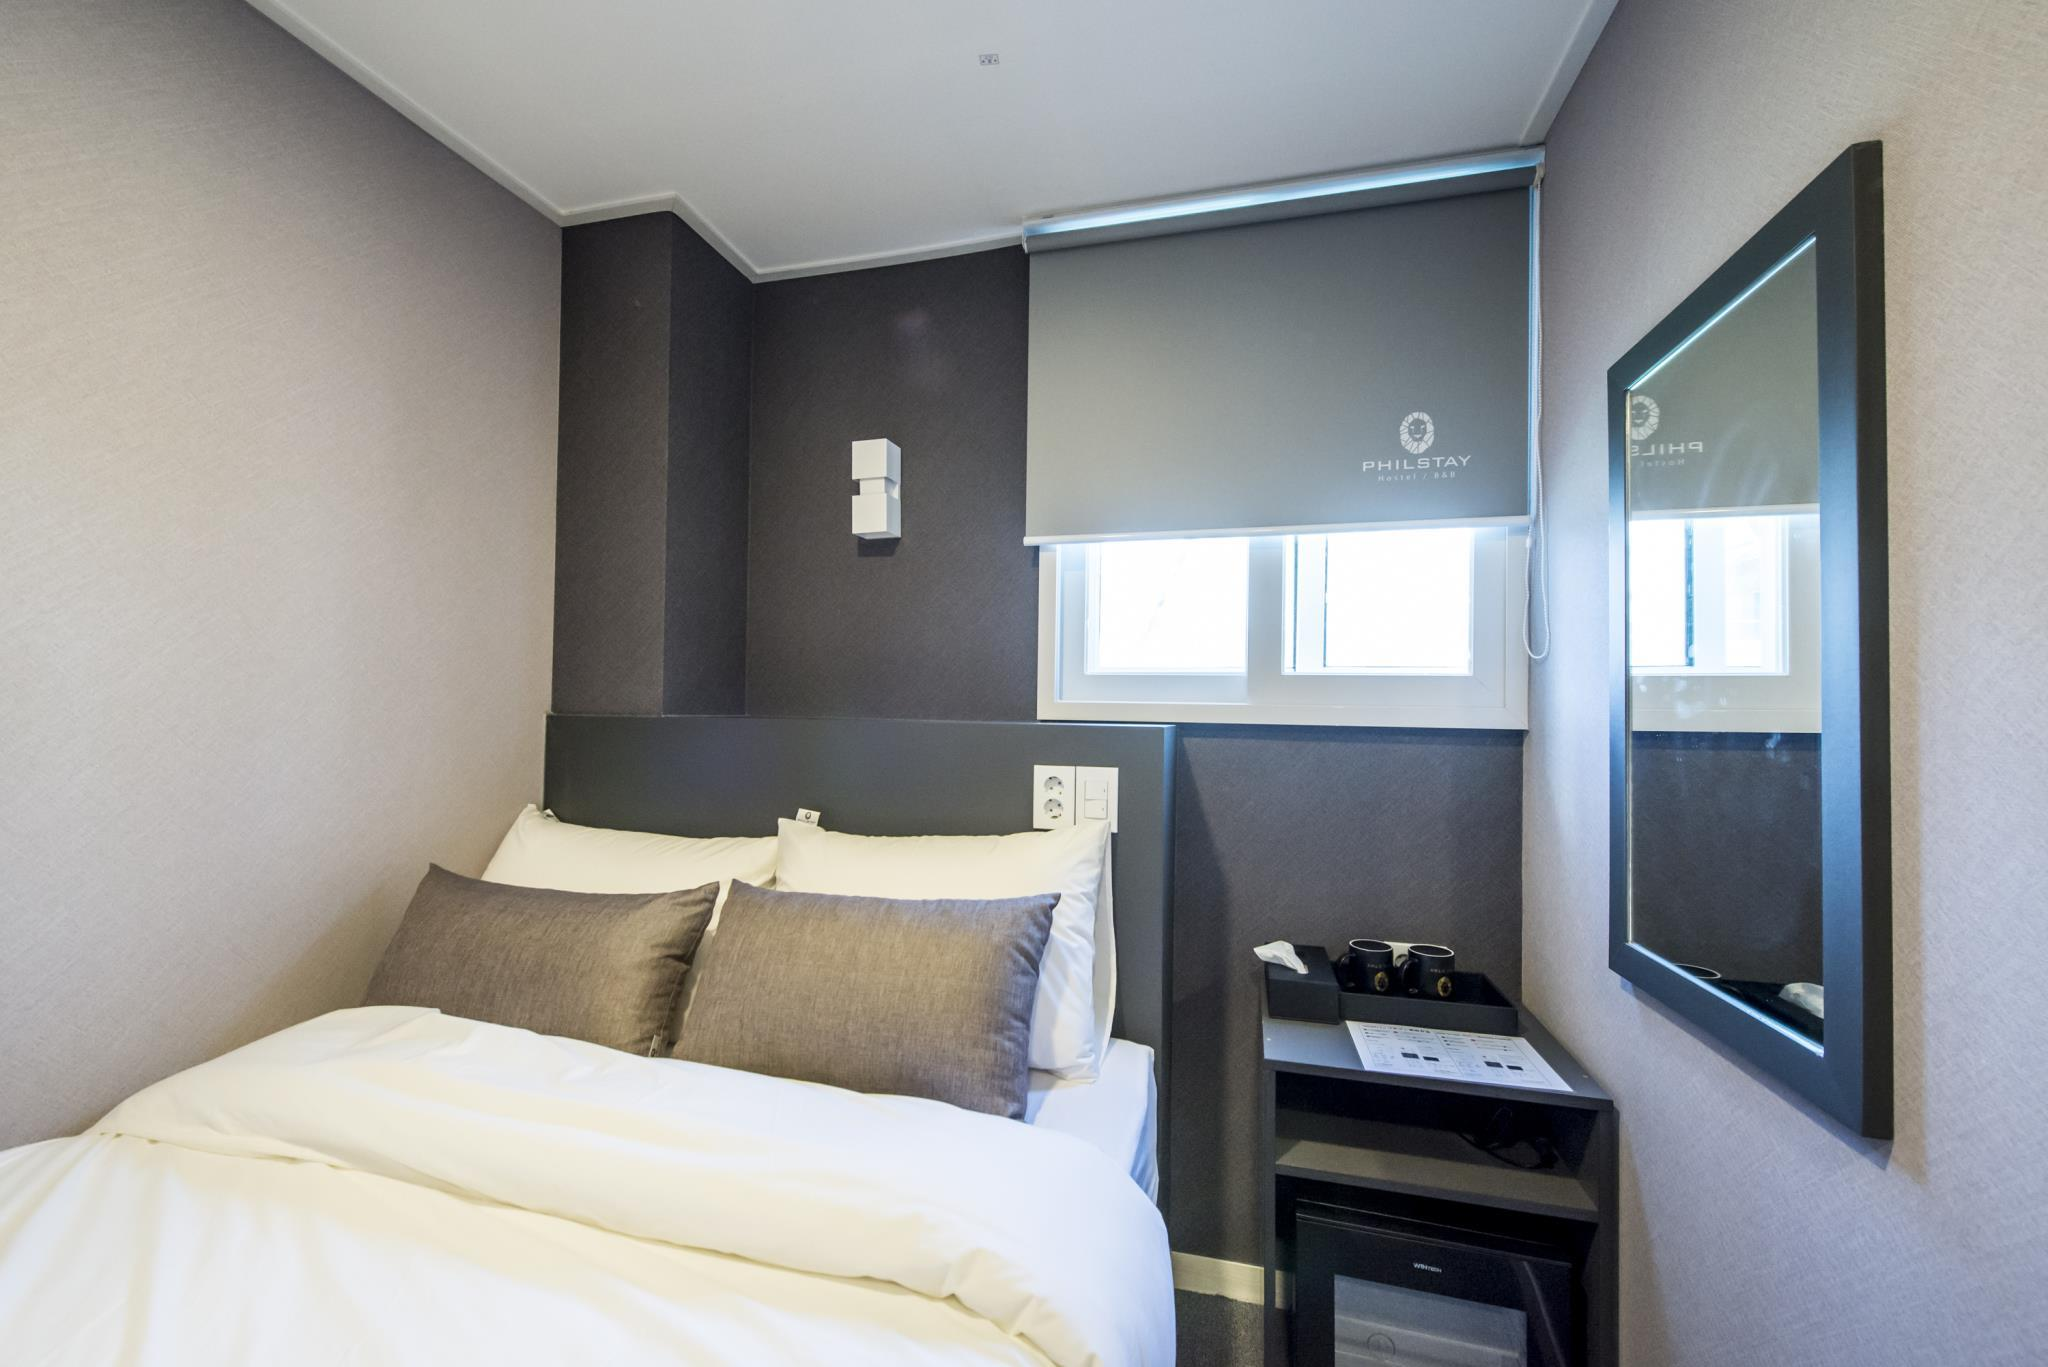 Philstay Myeongdong Metro Guesthouse Bed And Breakfast